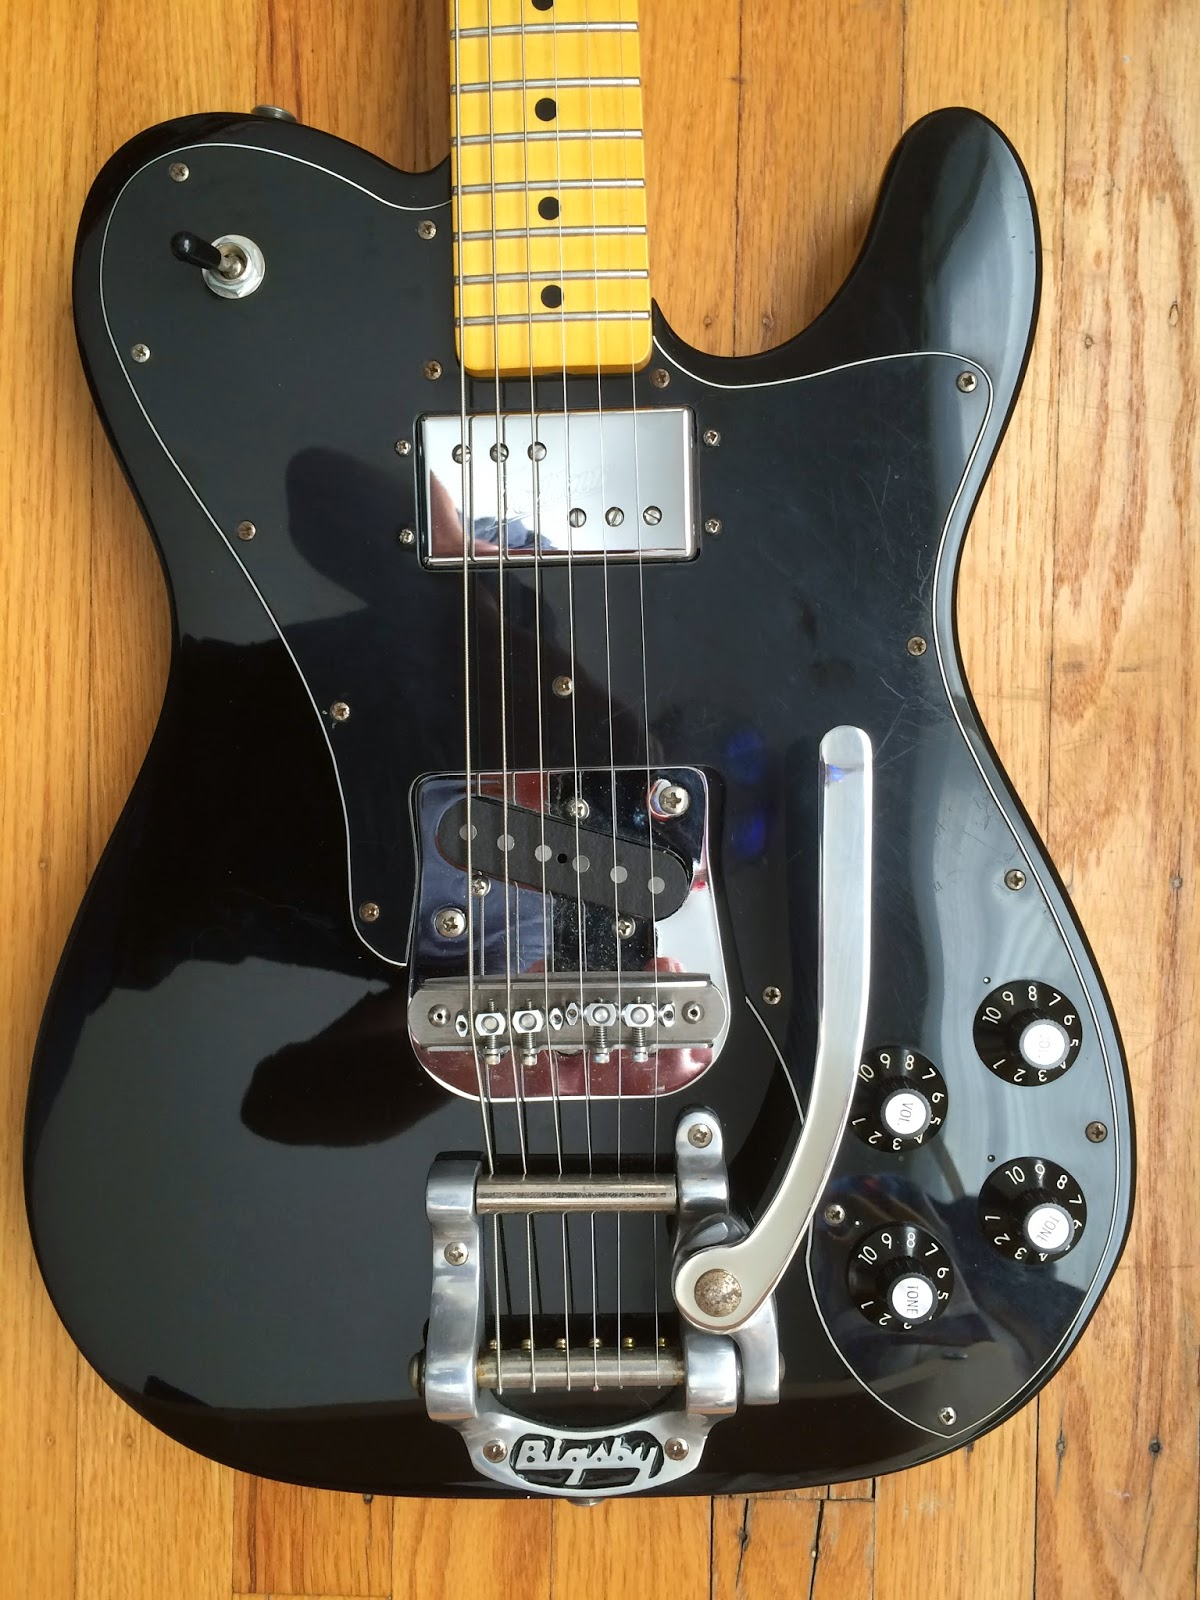 medium resolution of it s a classic combination a humbucker in the neck and a single coil in the bridge but it can be a real challenge to keep that single coil from sounding